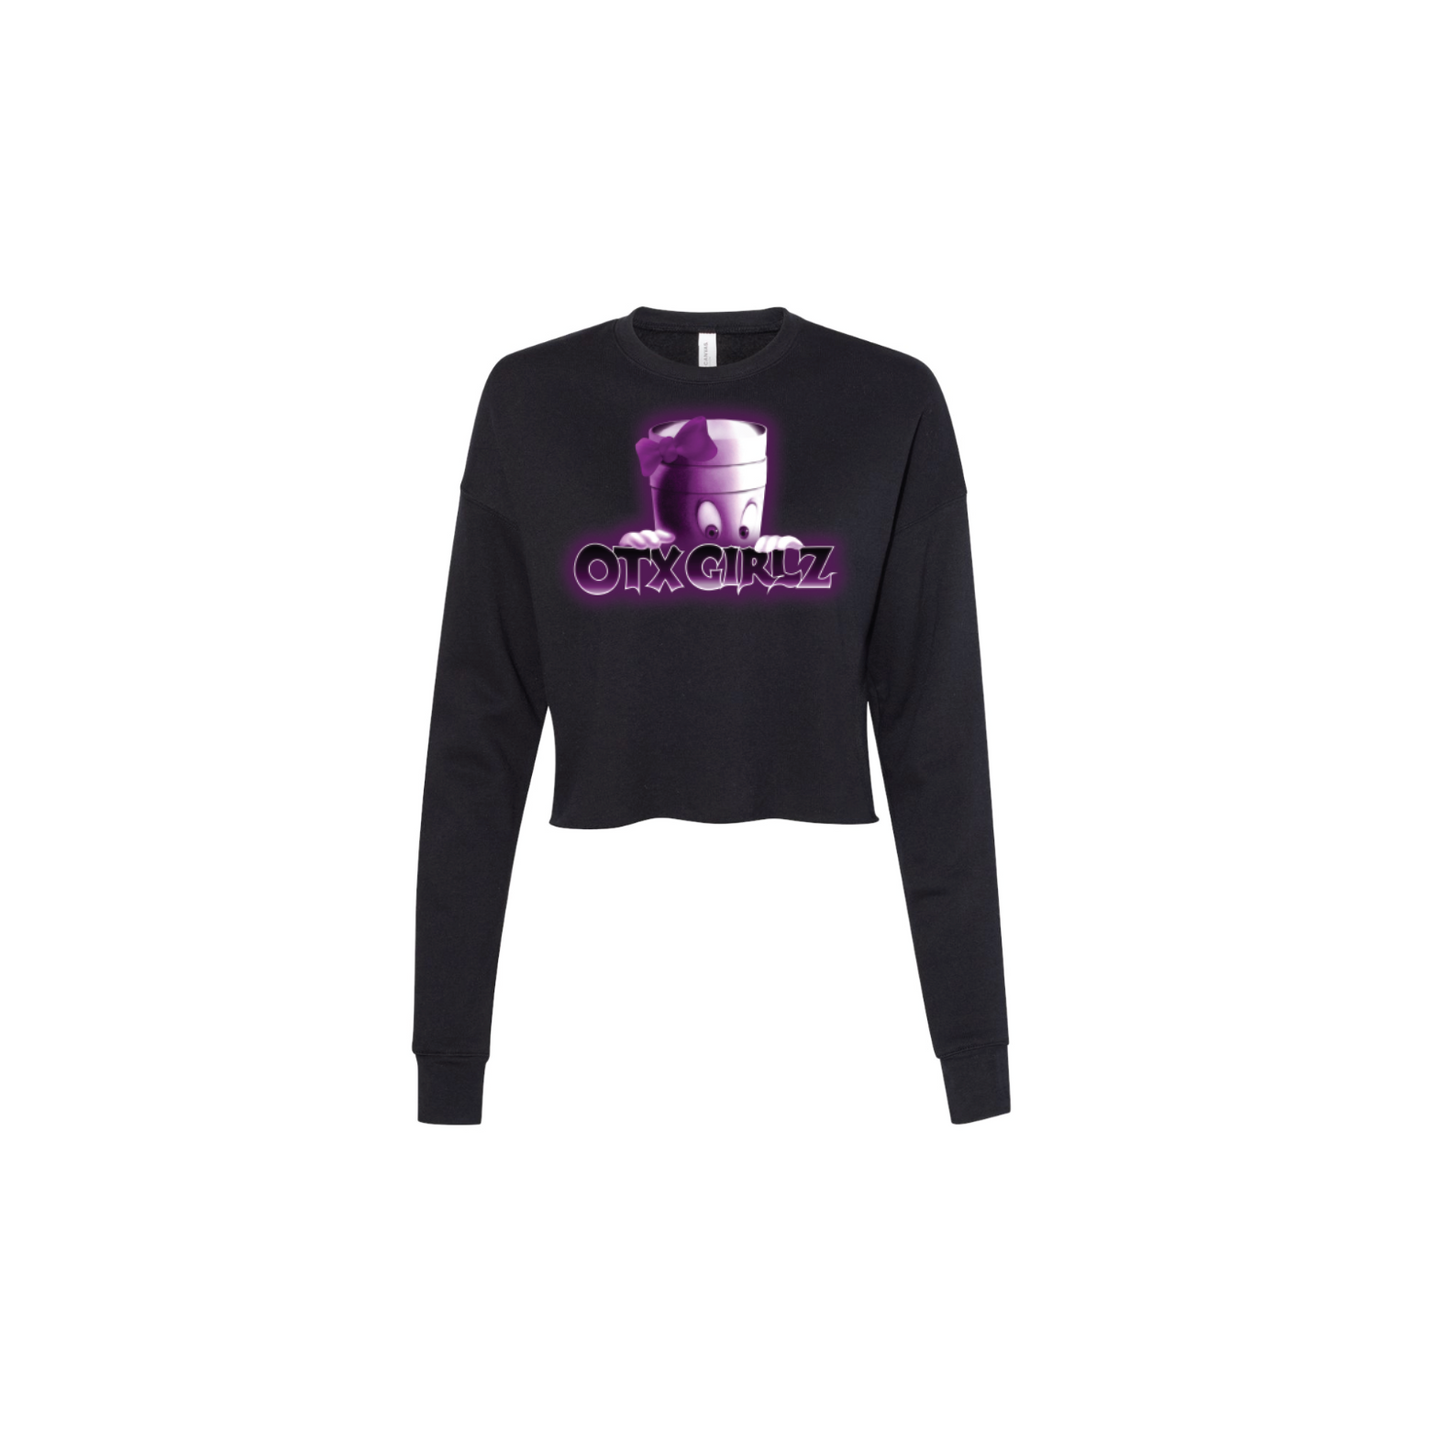 PEARL GHOST CROP LONG SLEEVE: BLACK/PURPLE